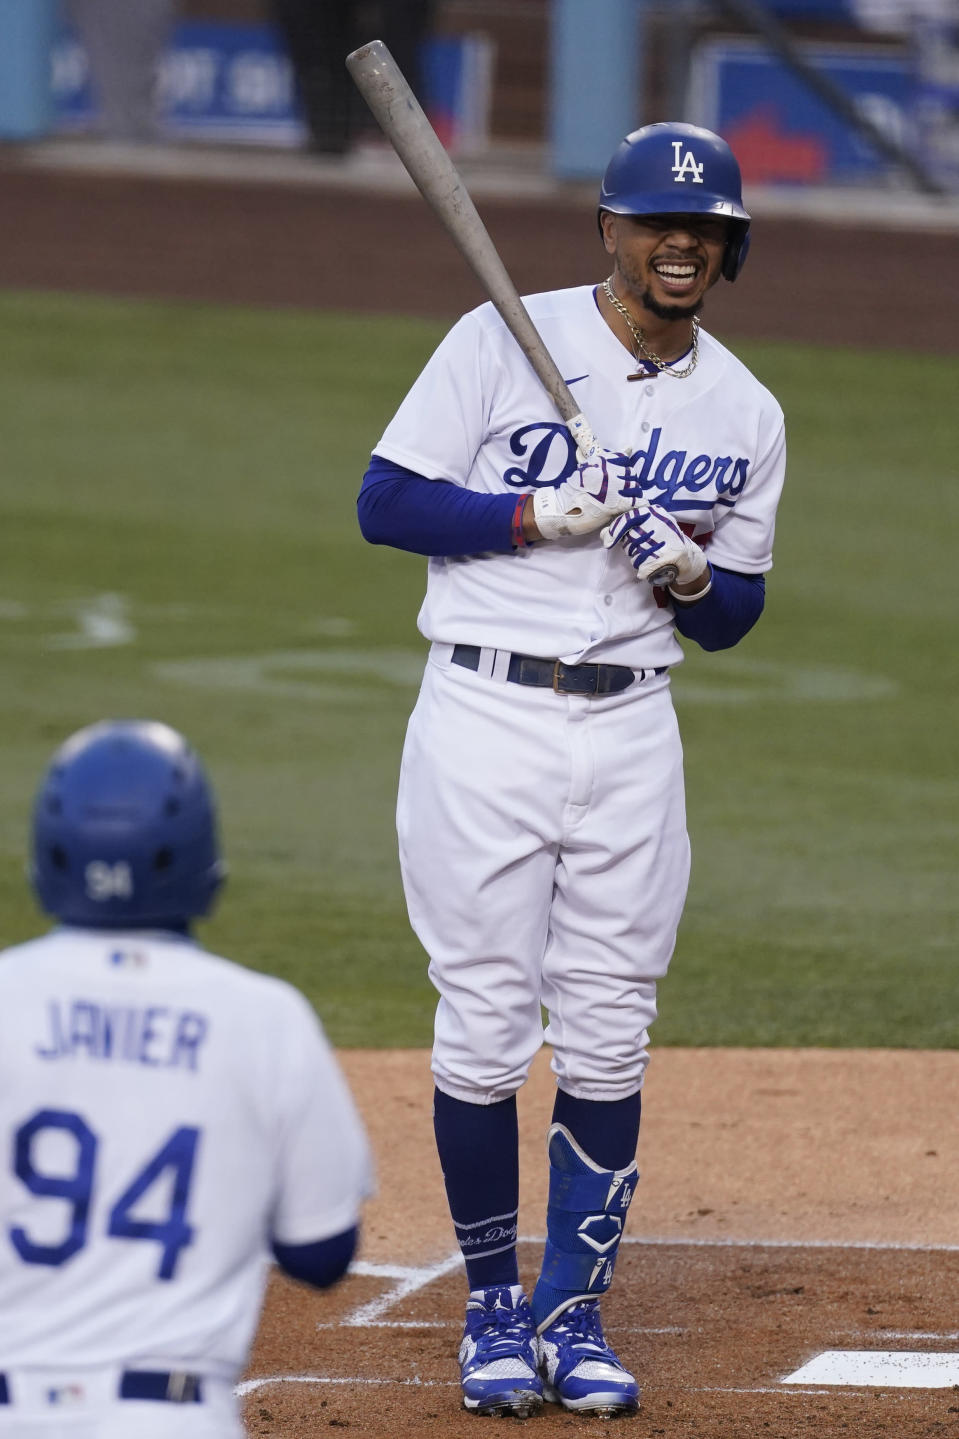 Los Angeles Dodgers' Mookie Betts reacts after being hit with a pitch by Los Angeles Angels starting pitcher Julio Teheran during the first inning of a baseball game Saturday, Sept. 26, 2020, in Los Angeles. (AP Photo/Ashley Landis)